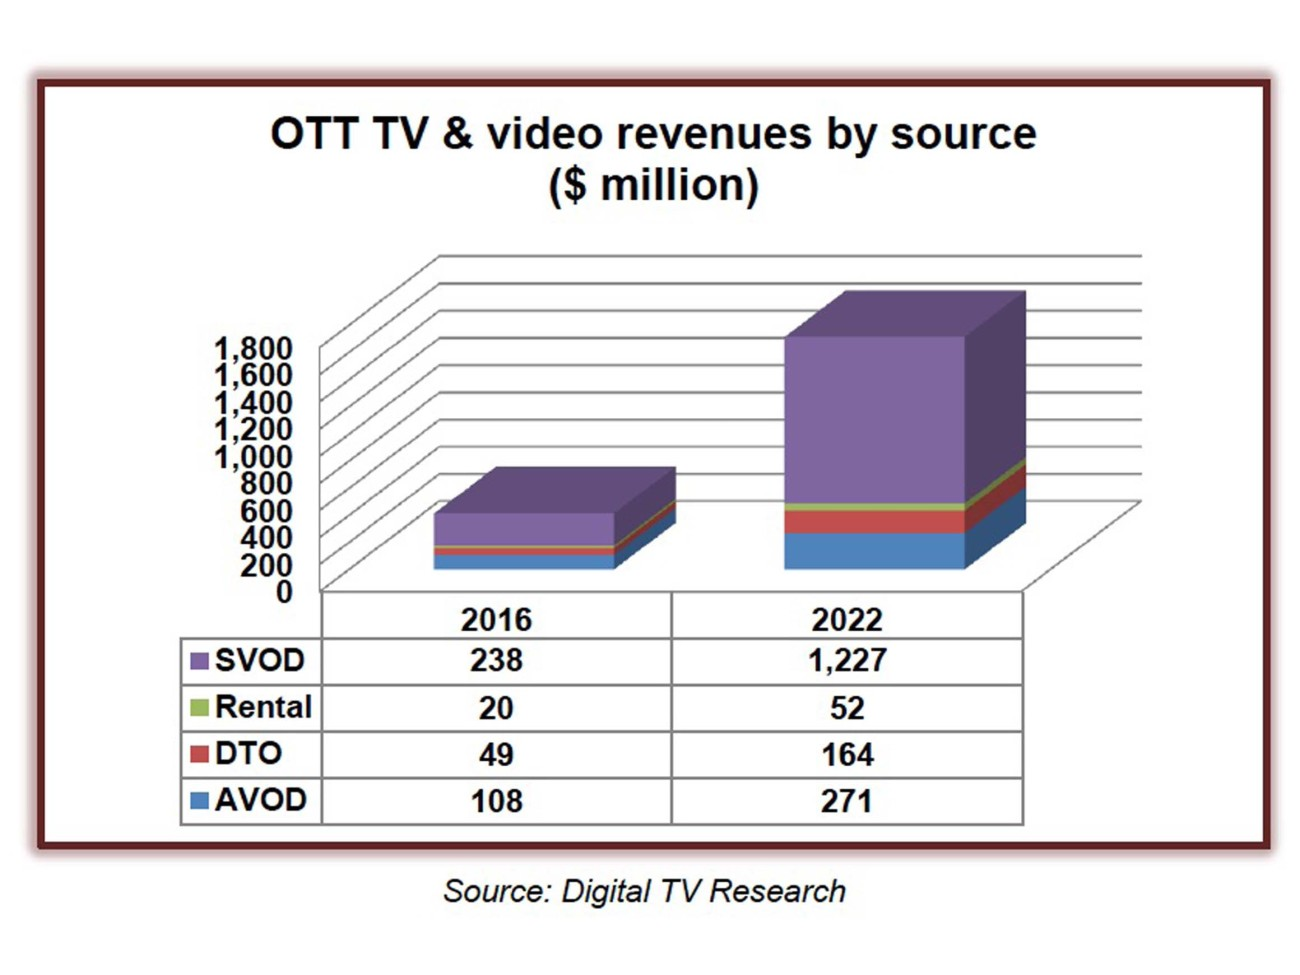 Photo: Projected MENA OTT and video revenues by 2022